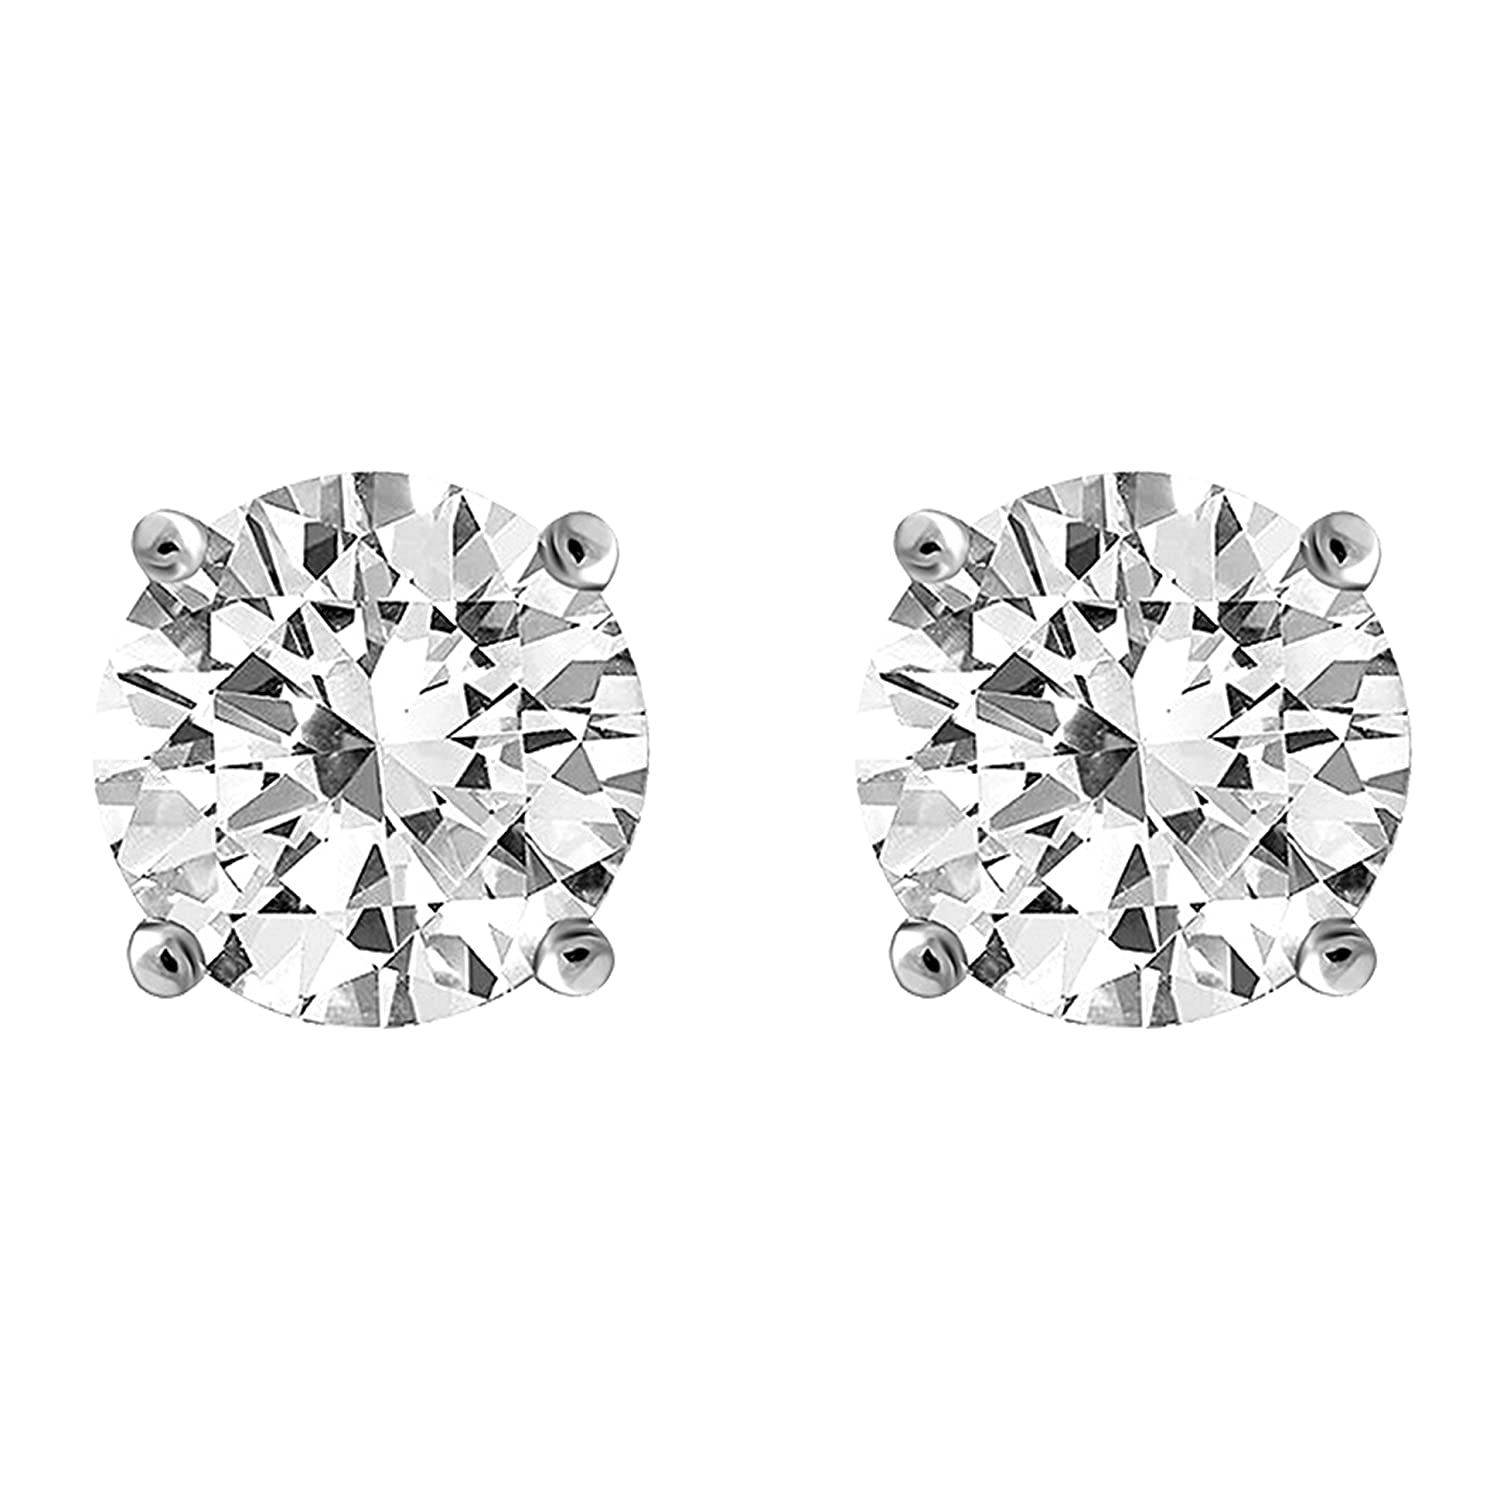 IGI Certified Diamond Stud Earrings for Women Set in 14K Gold, Supreme Quality Clarity I2I3